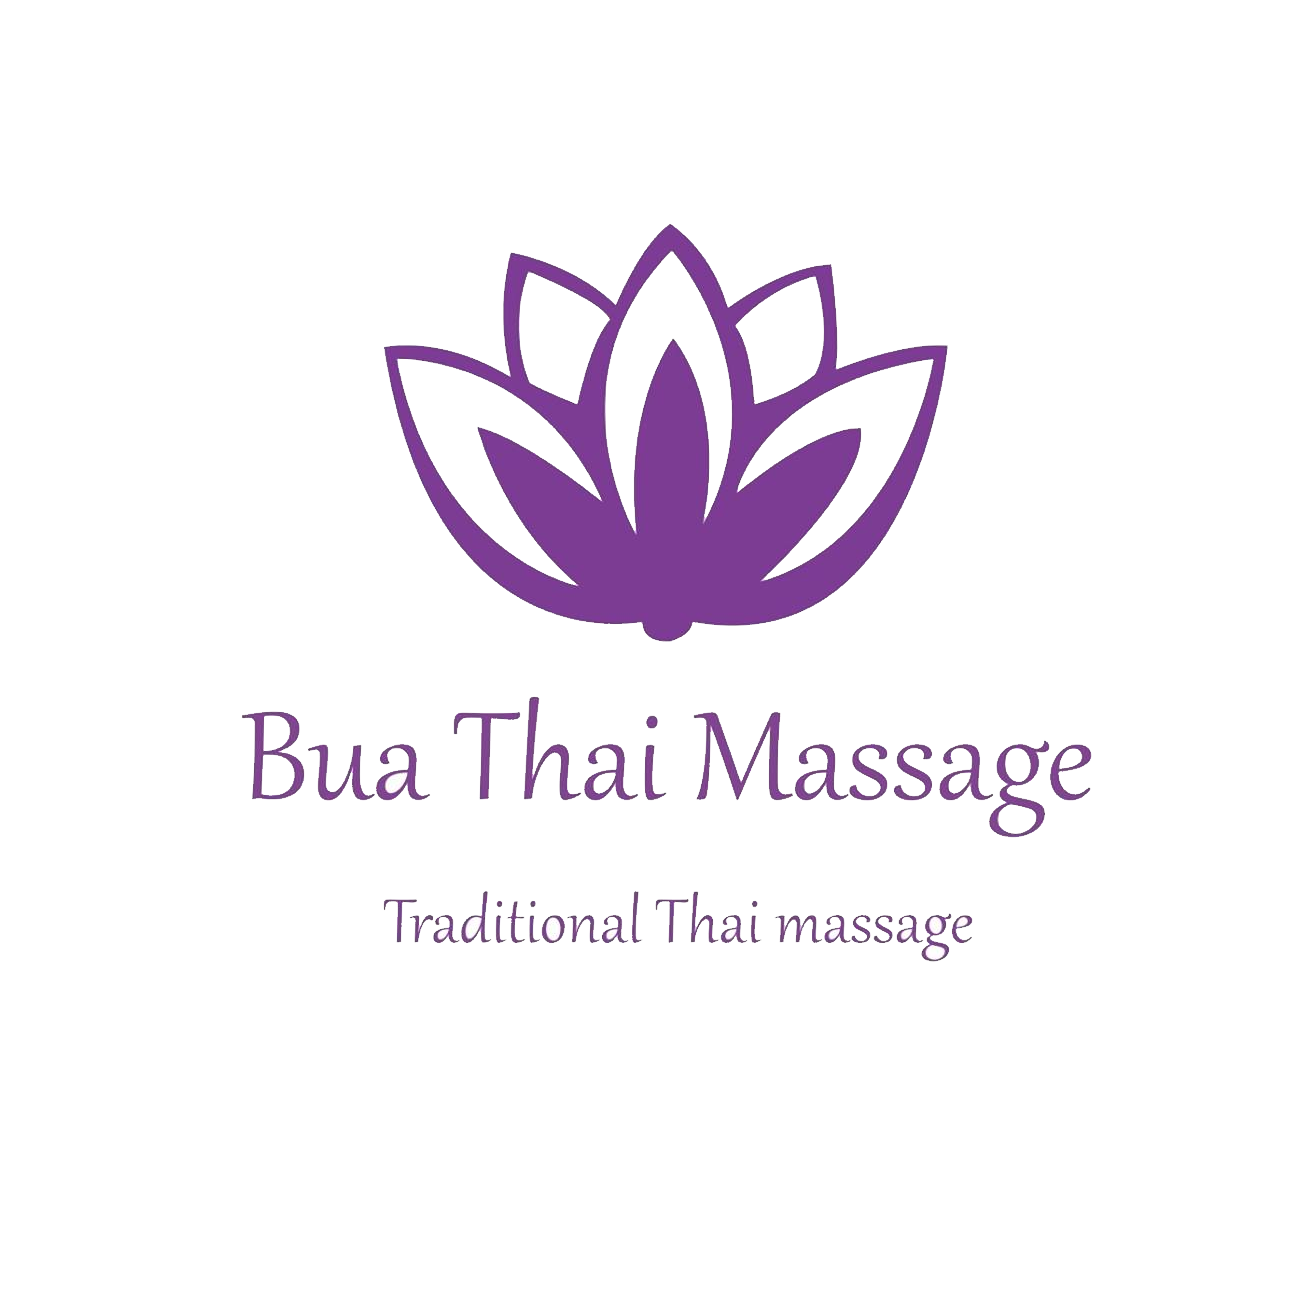 Bua Thai Massage